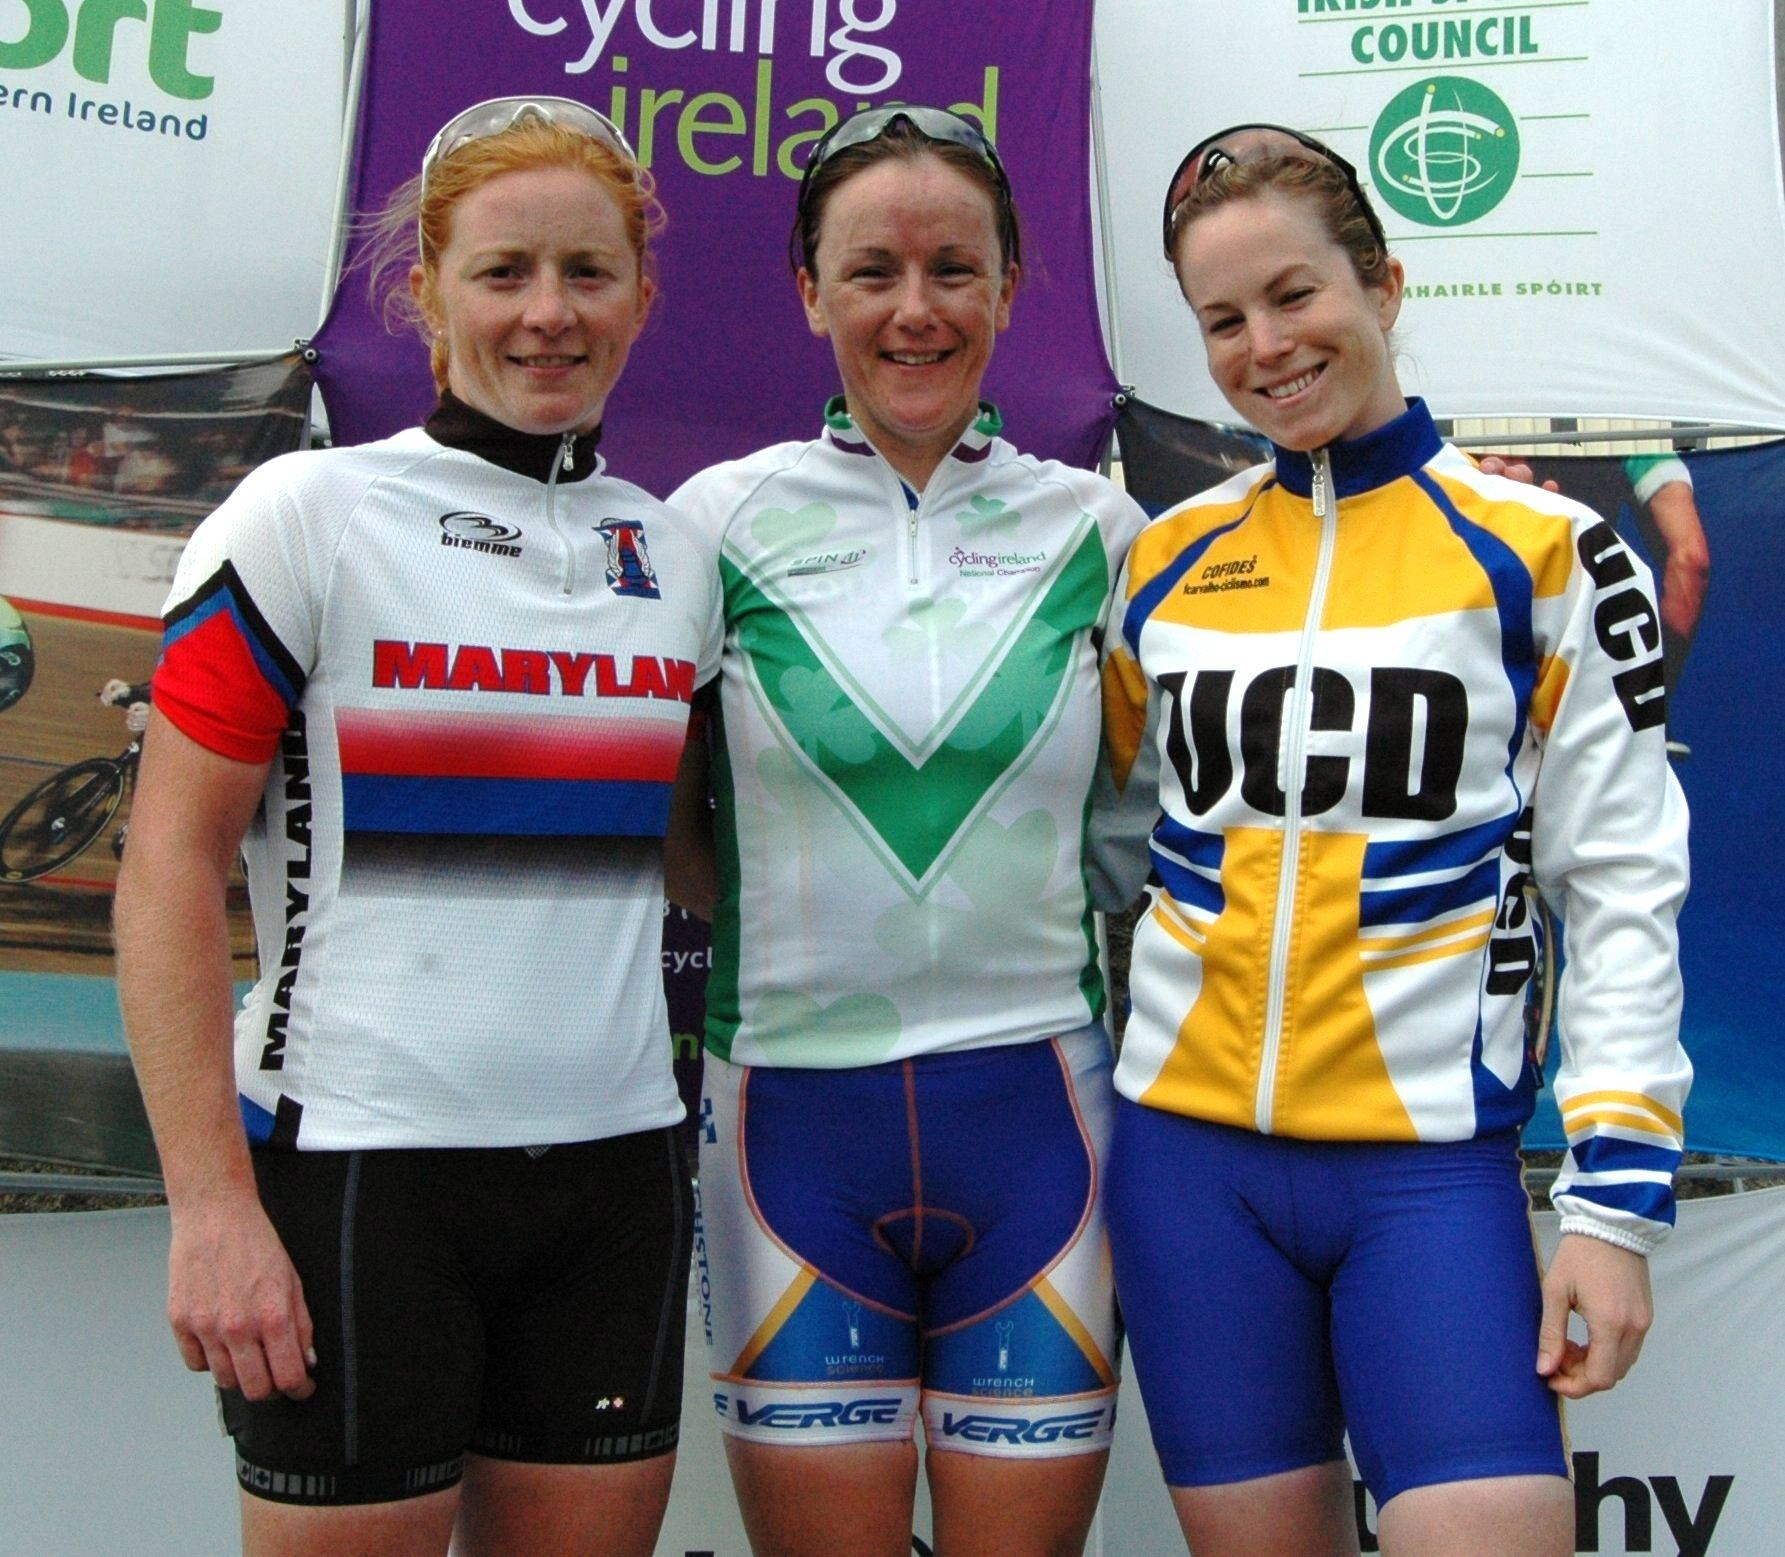 Report on National TT Champs from Olivia Dillon - Women s Cycling ... 9a80bdc34